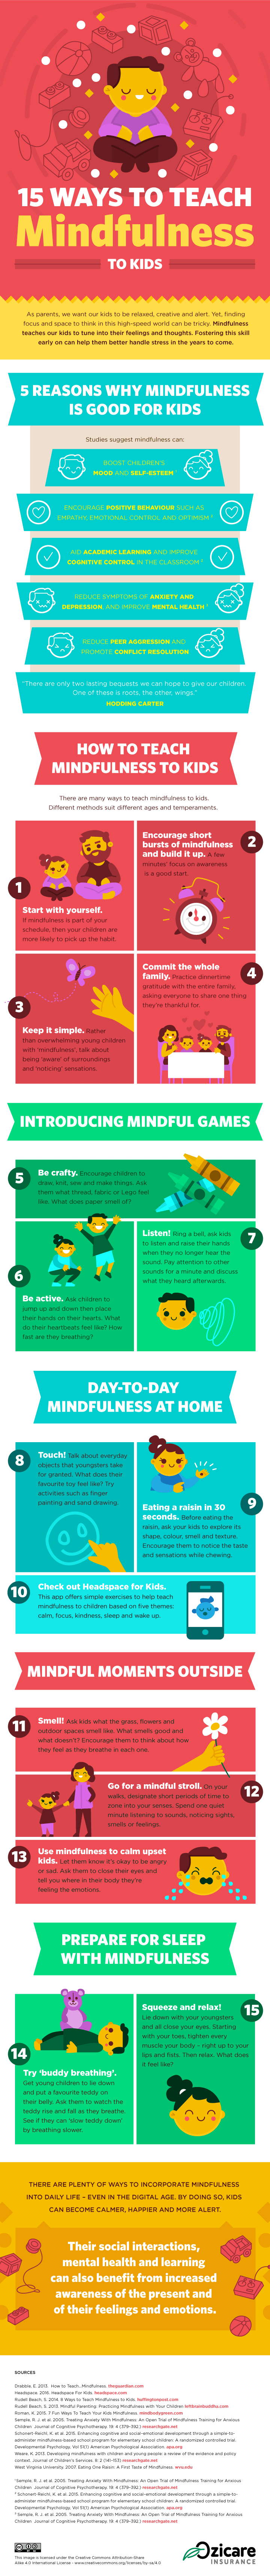 15 Ways To Teach Mindfulness To Kids Infographic